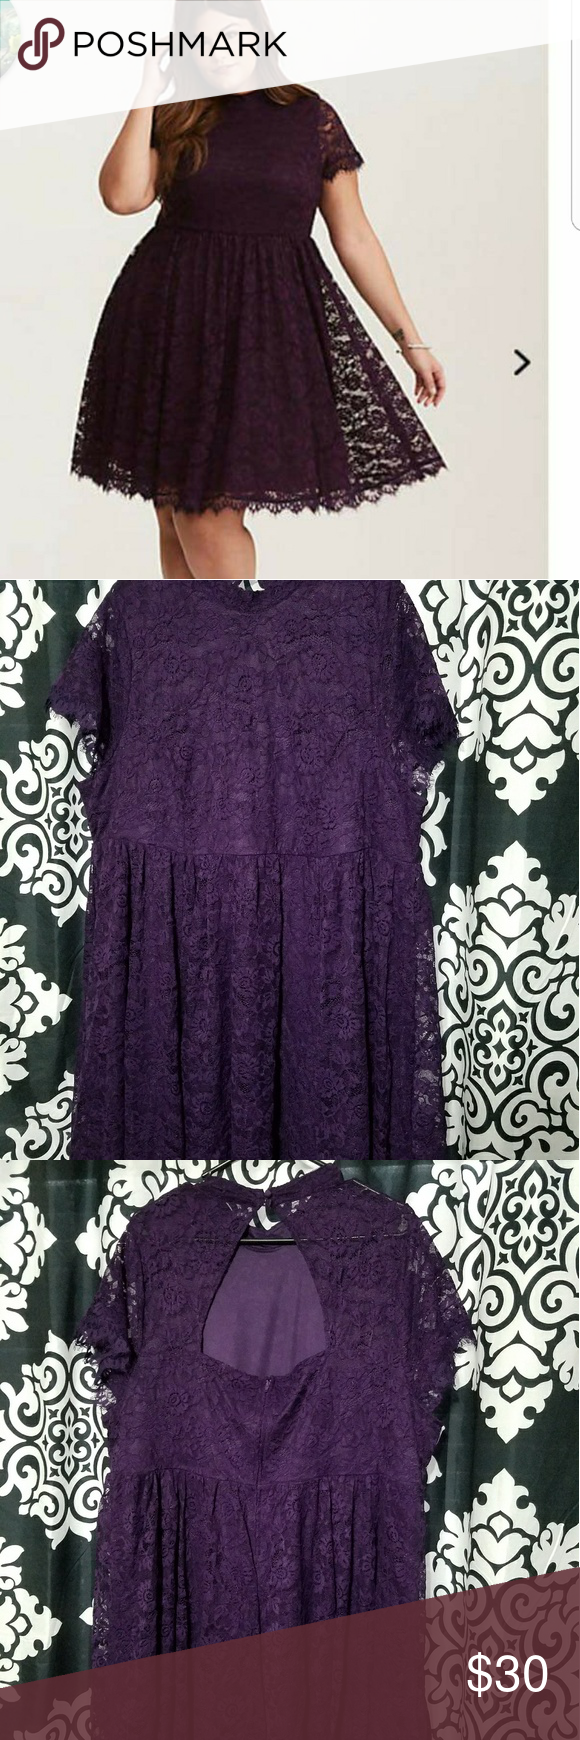 c63d0bee78f Deep Purple Lace High Neck Skater Dress This dress is an old-meets-new  fave. The bold lace creates a modest look with a high neck and a fit and  flare skirt.